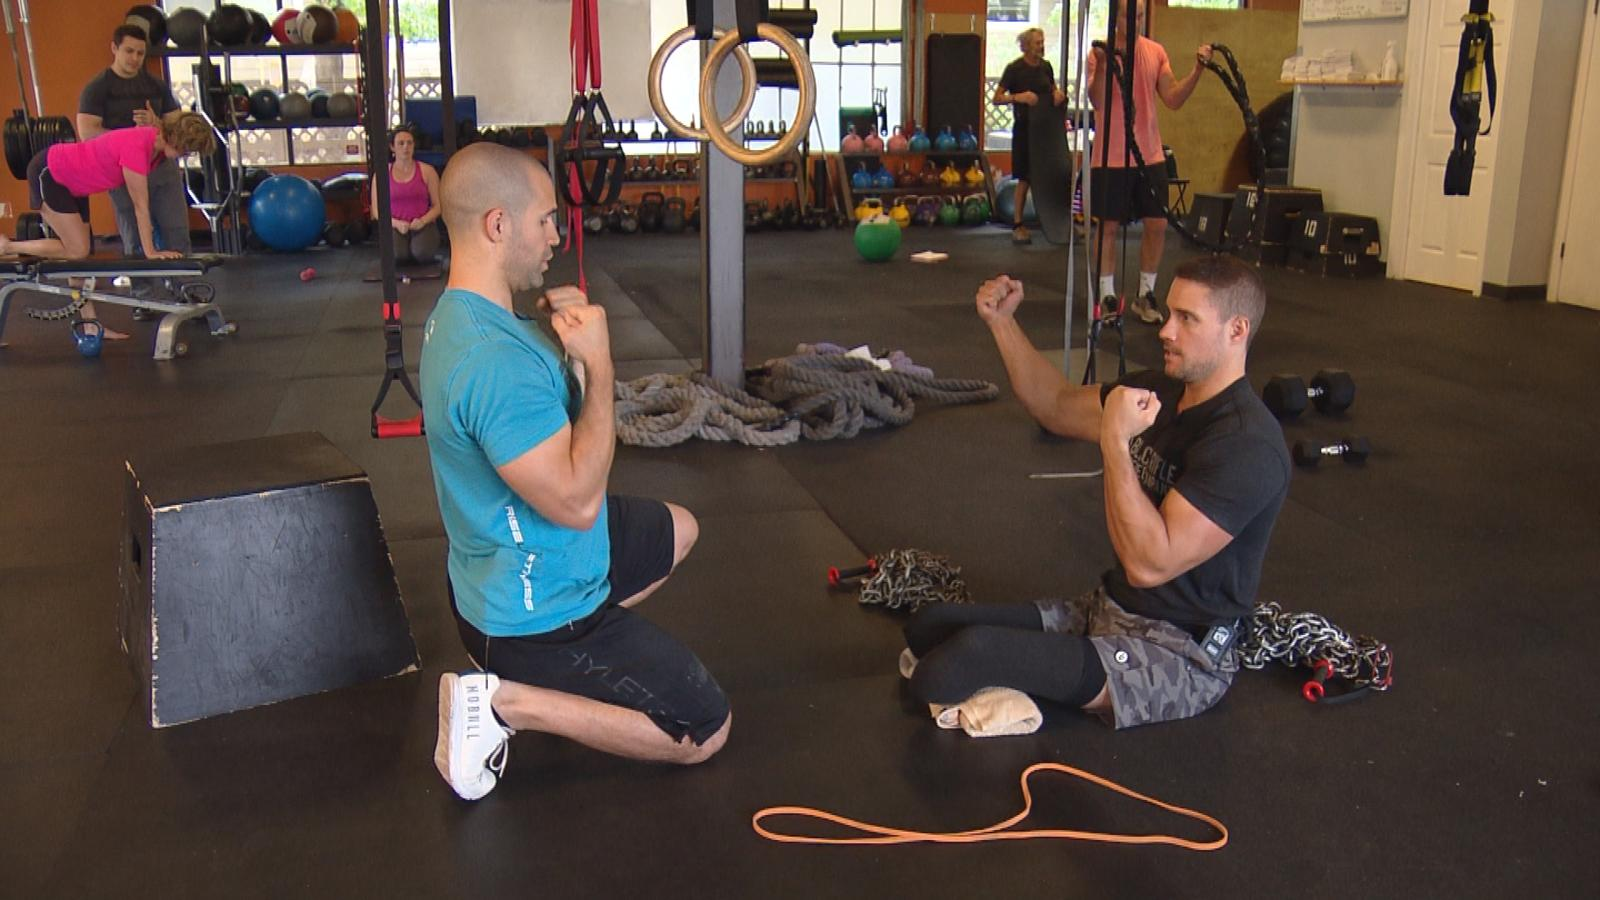 Craig Towler working out (credit: CBS)